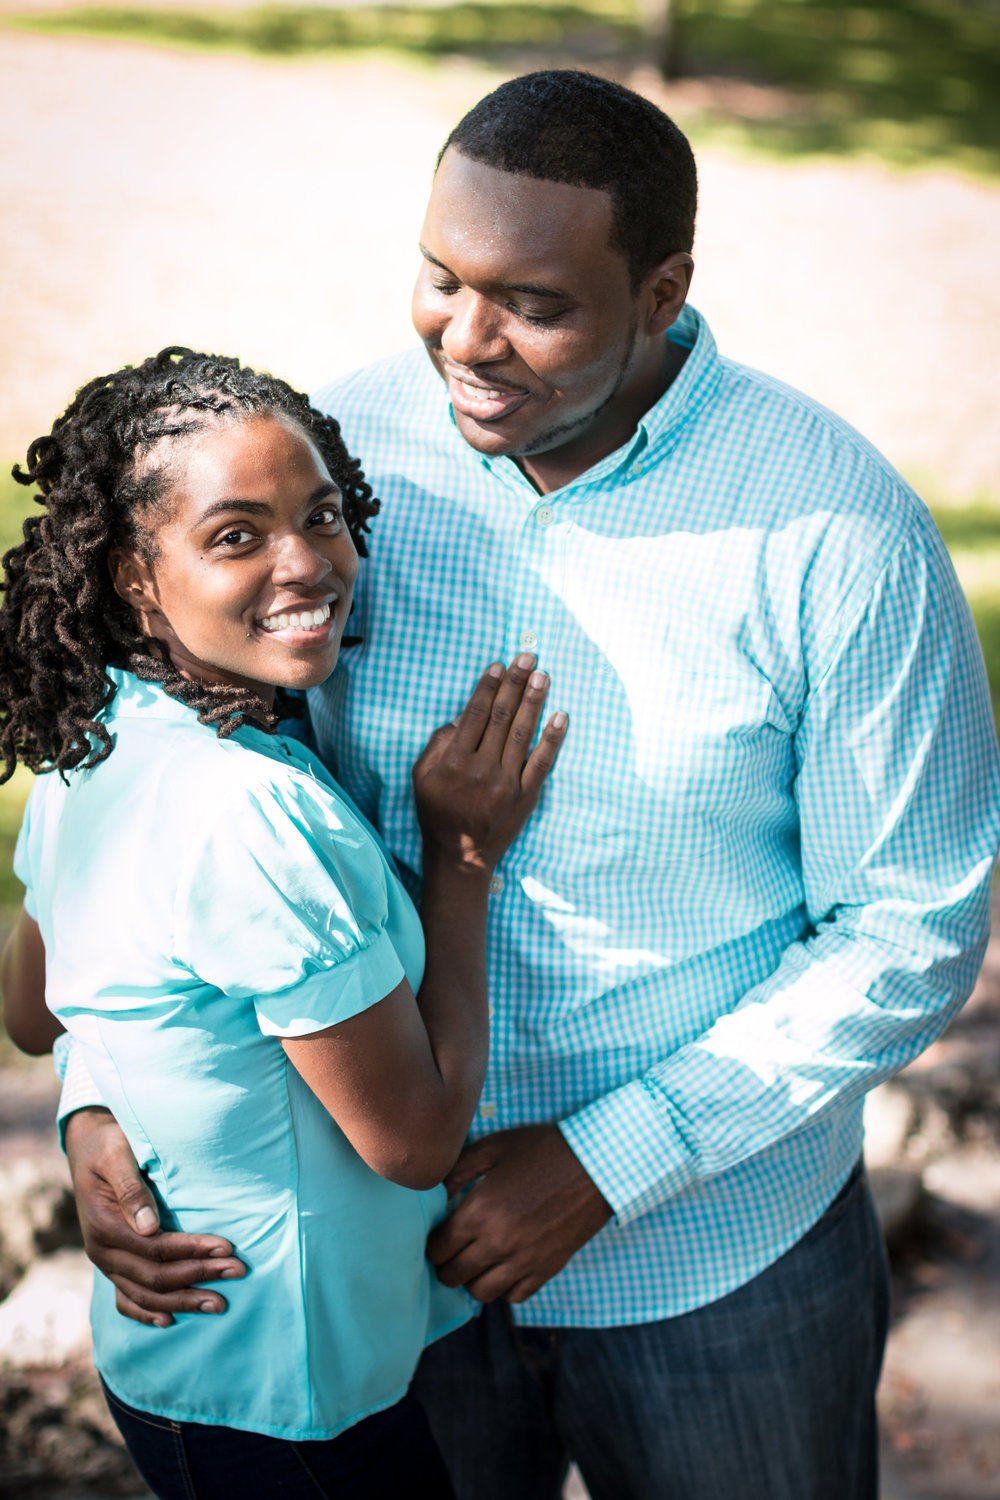 CLICK HERE TO SIGN UP FOR OUR FREE TRAINING! 3 SECRETS TO A HAPPY HEALTHY MARRIAGE